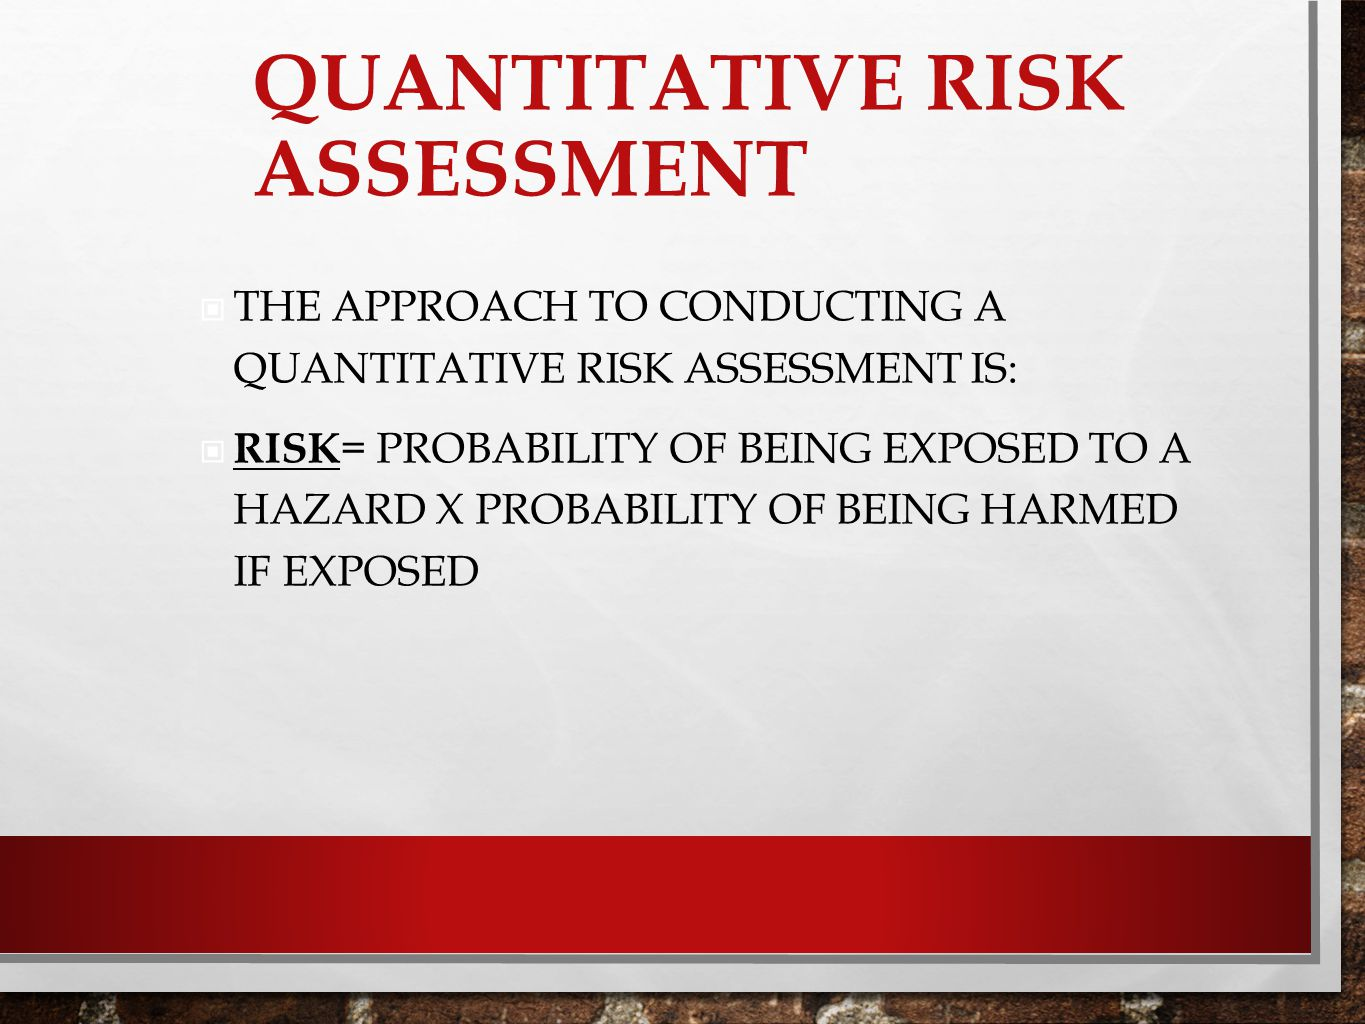 QUANTITATIVE RISK ASSESSMENT THE APPROACH TO CONDUCTING A QUANTITATIVE RISK ASSESSMENT IS: RISK = PROBABILITY OF BEING EXPOSED TO A HAZARD X PROBABILI